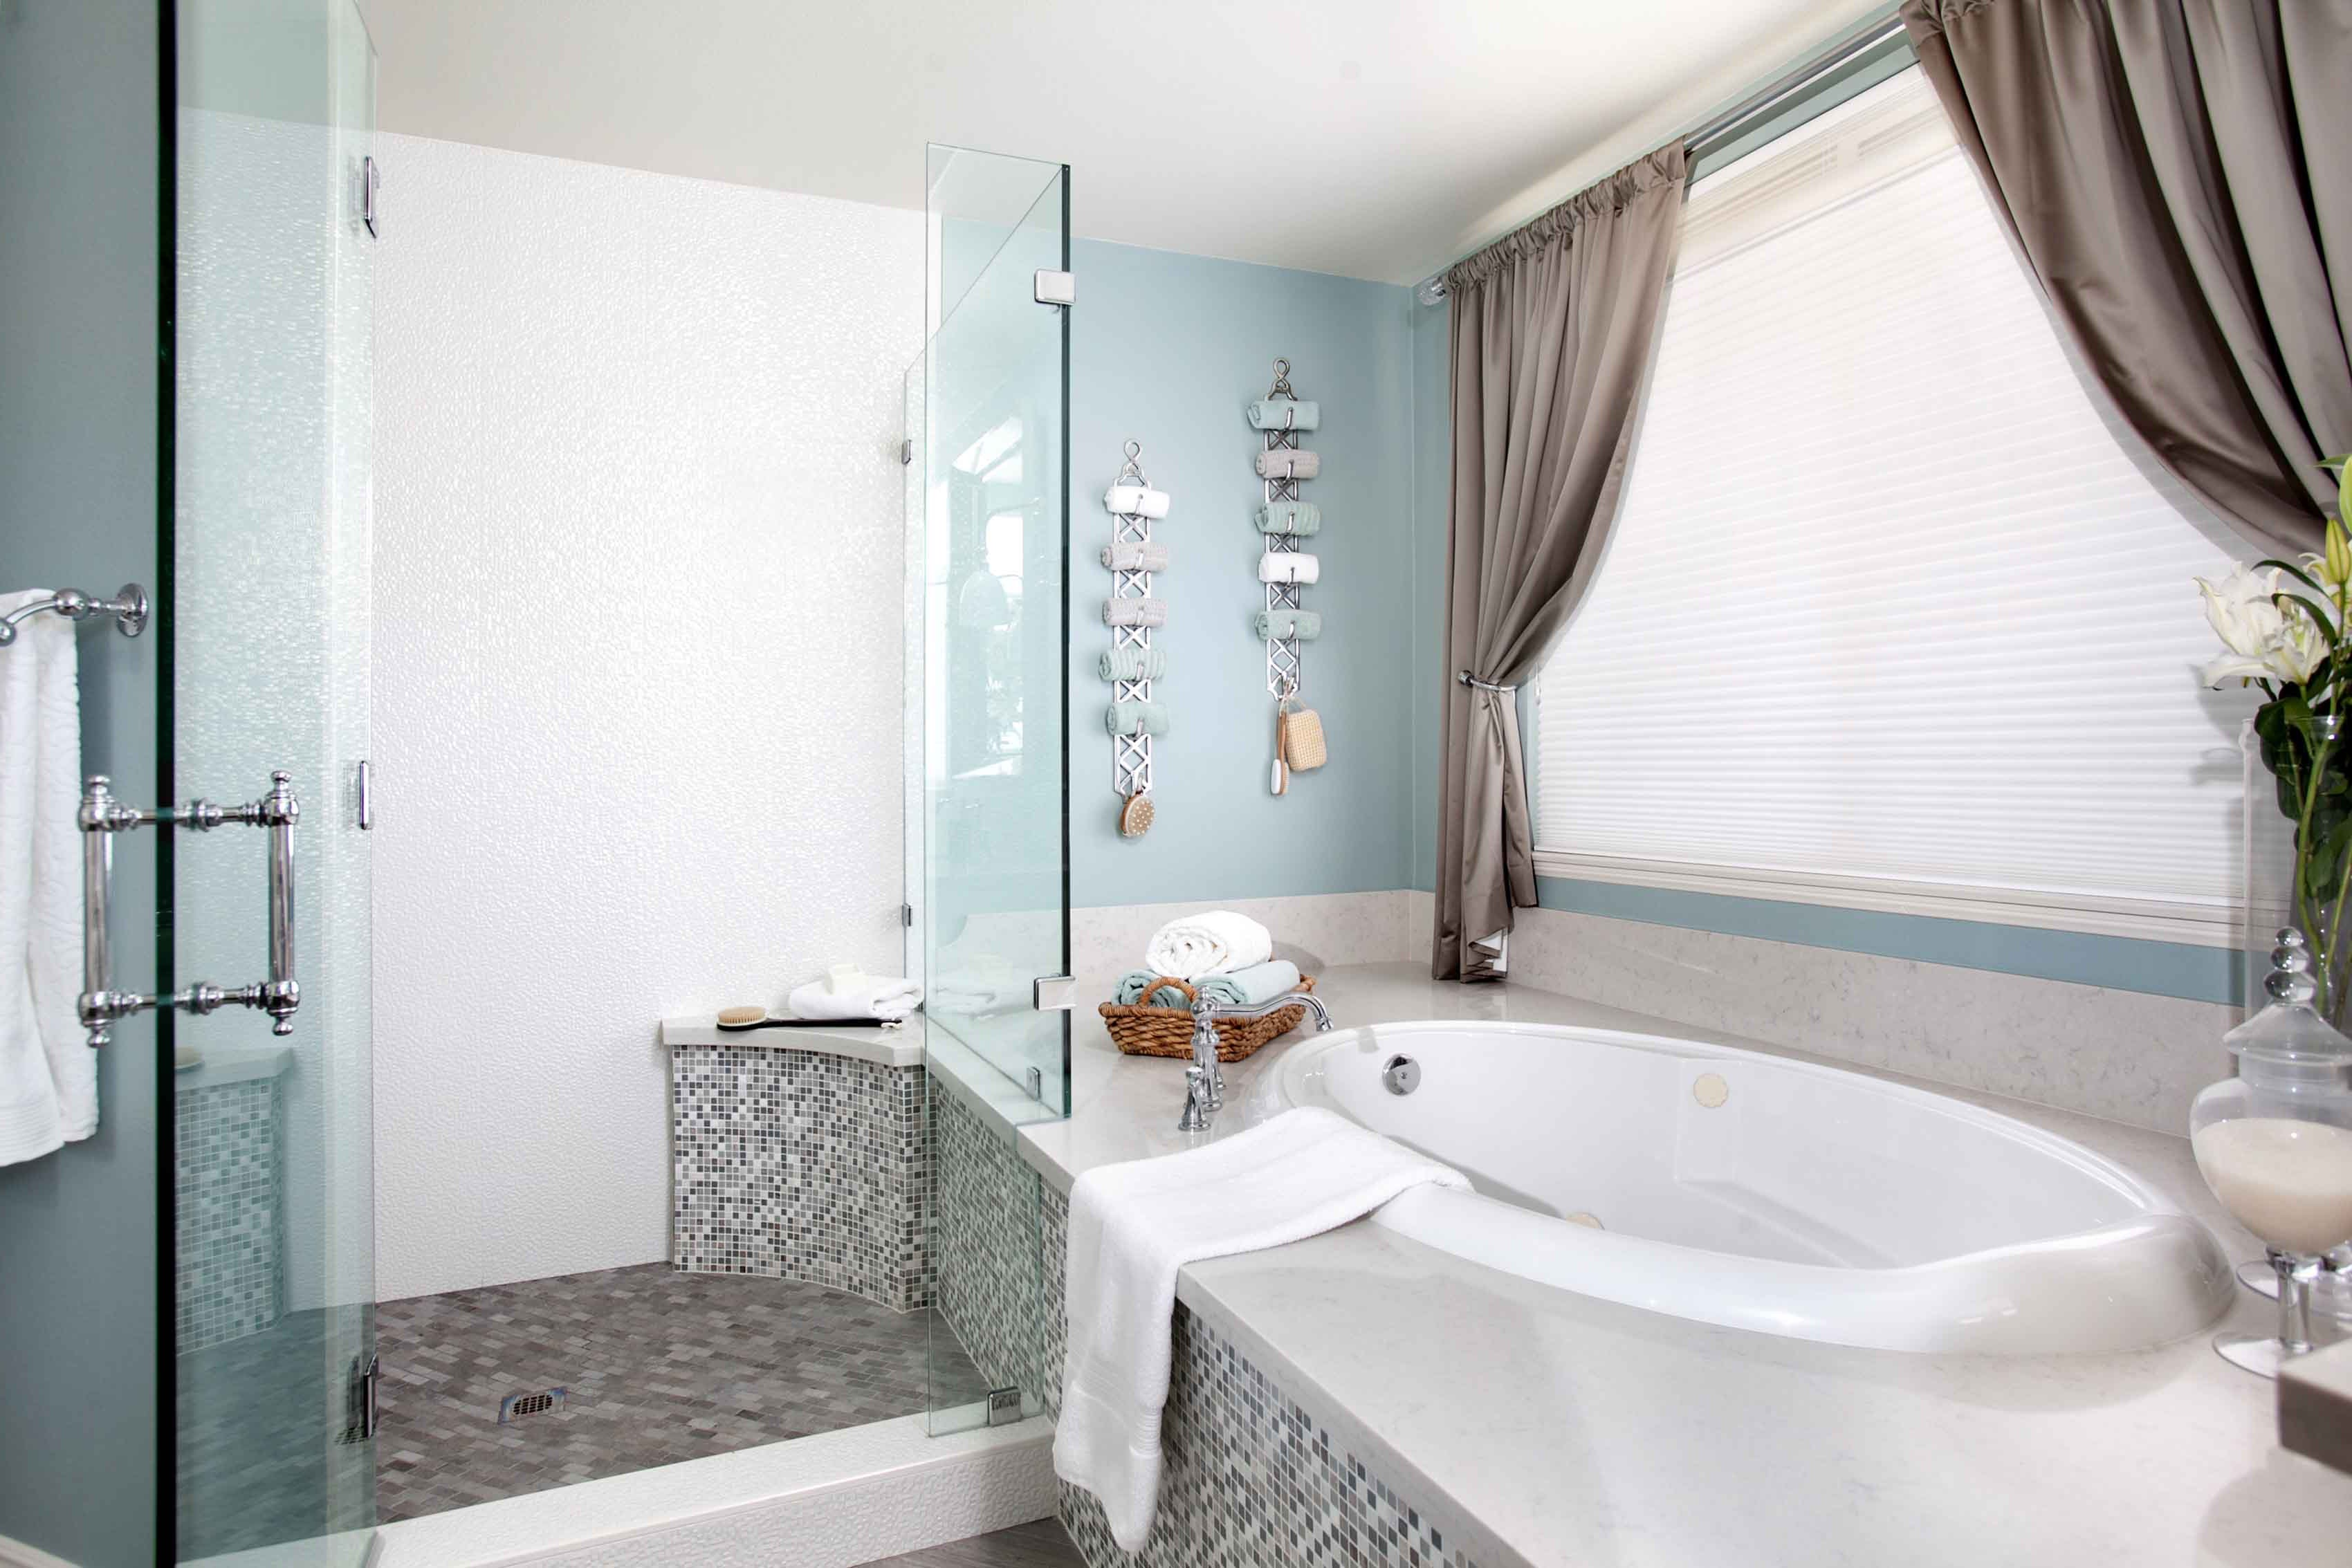 Luxe Master Bathroom Boasts Oval Tub And Walk In Shower Design Combo (Image 11 of 19)